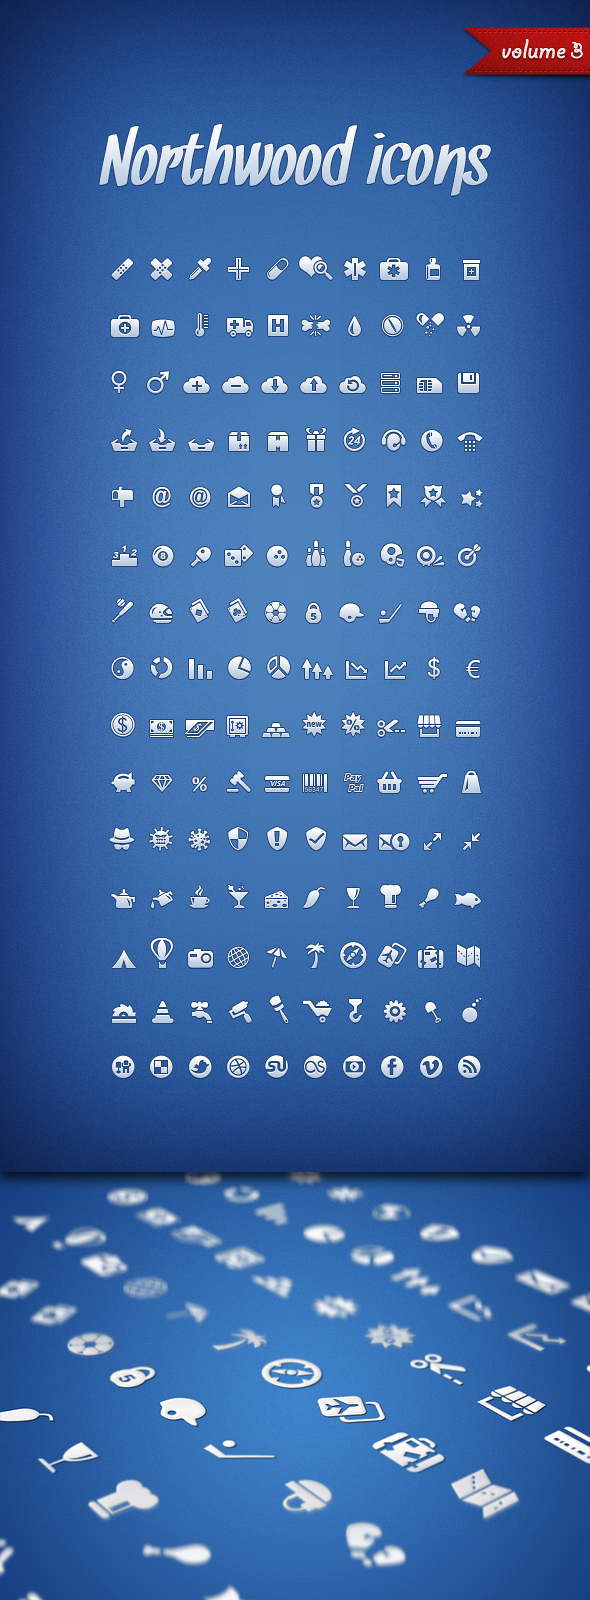 Northwood icons volume 3 by N0RTHWOOD